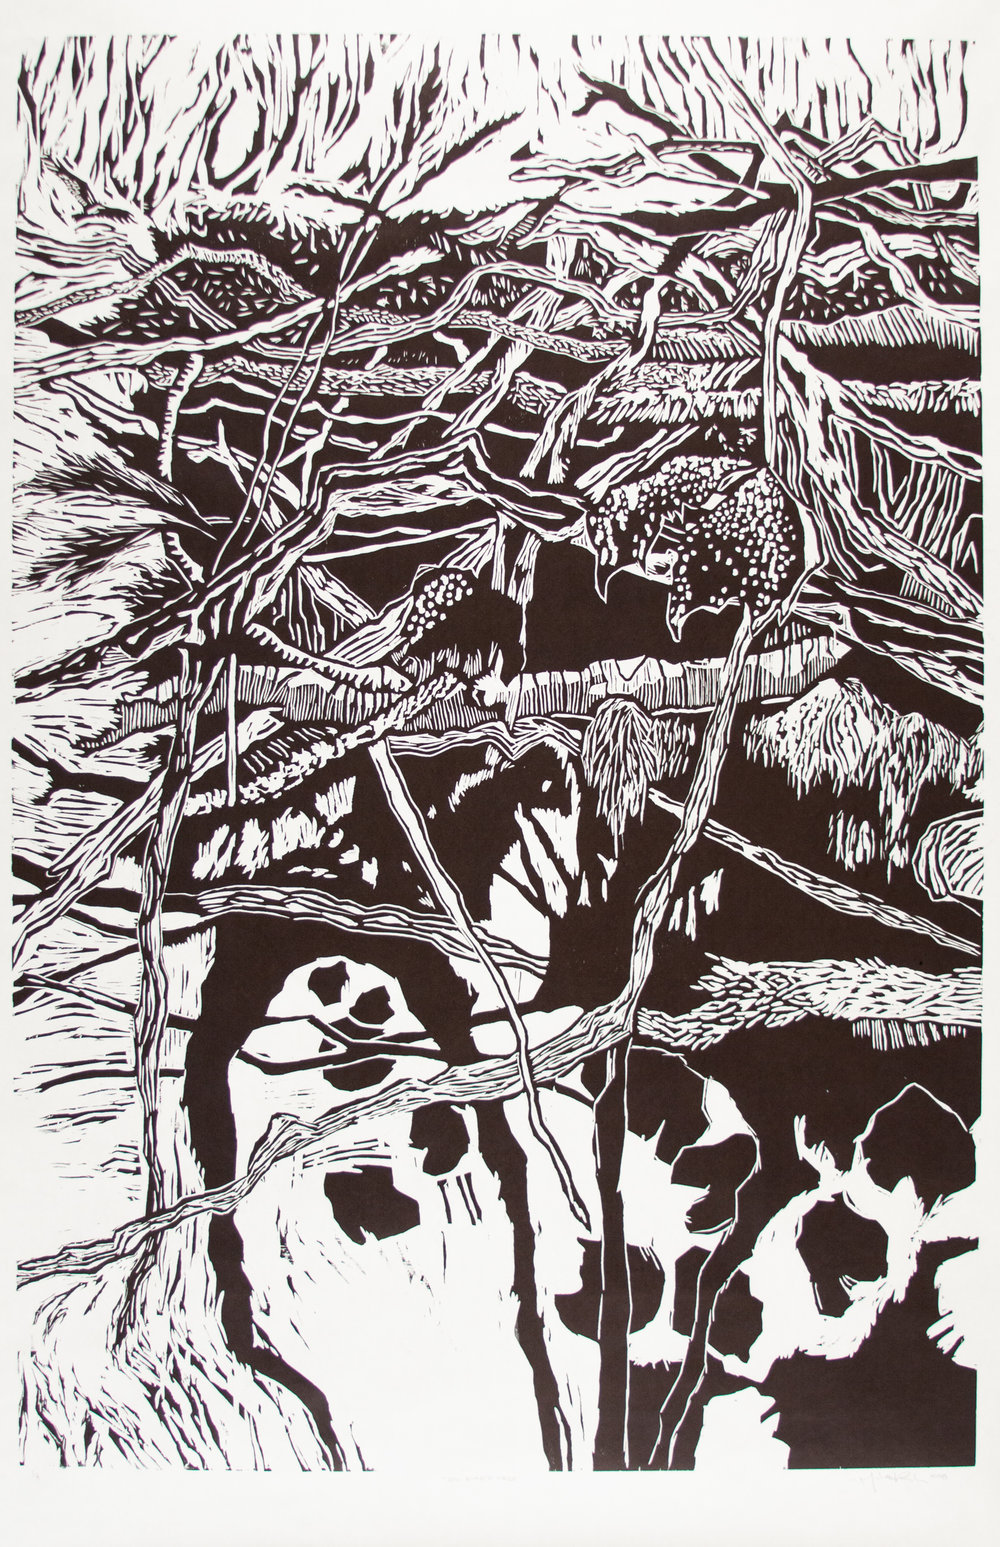 Michael Rich  Big Bird's Nest,  2018 woodcut print 72 x 36 in. edition of 4